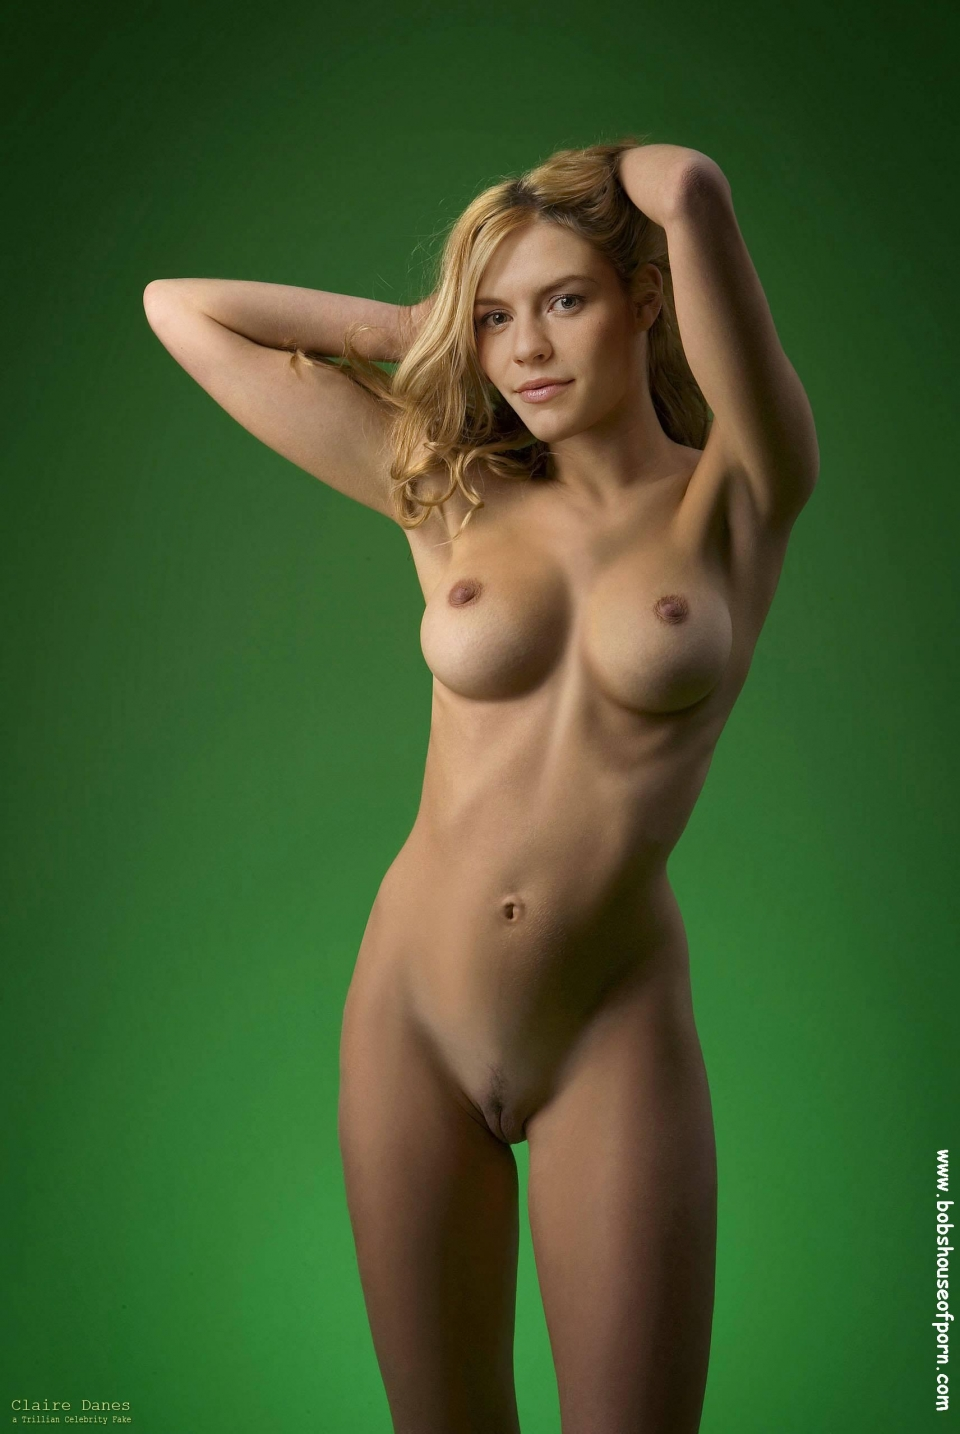 taylor stevens nude pussy pics